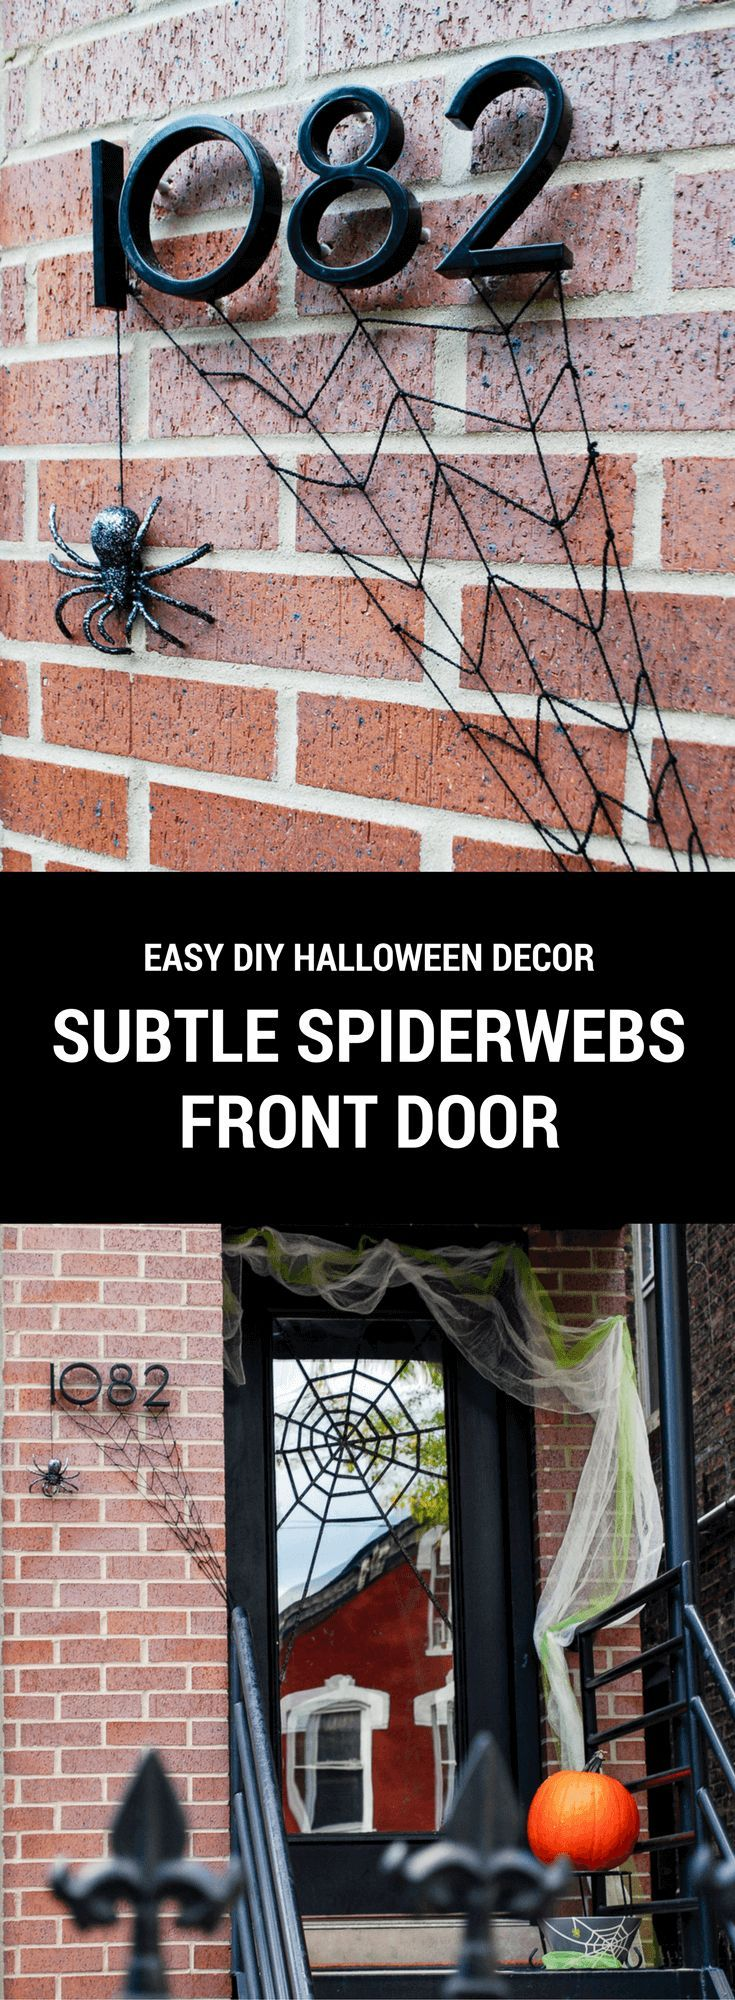 Window decor for halloween  diy halloween front door decoration subtle spiderwebs  halloween